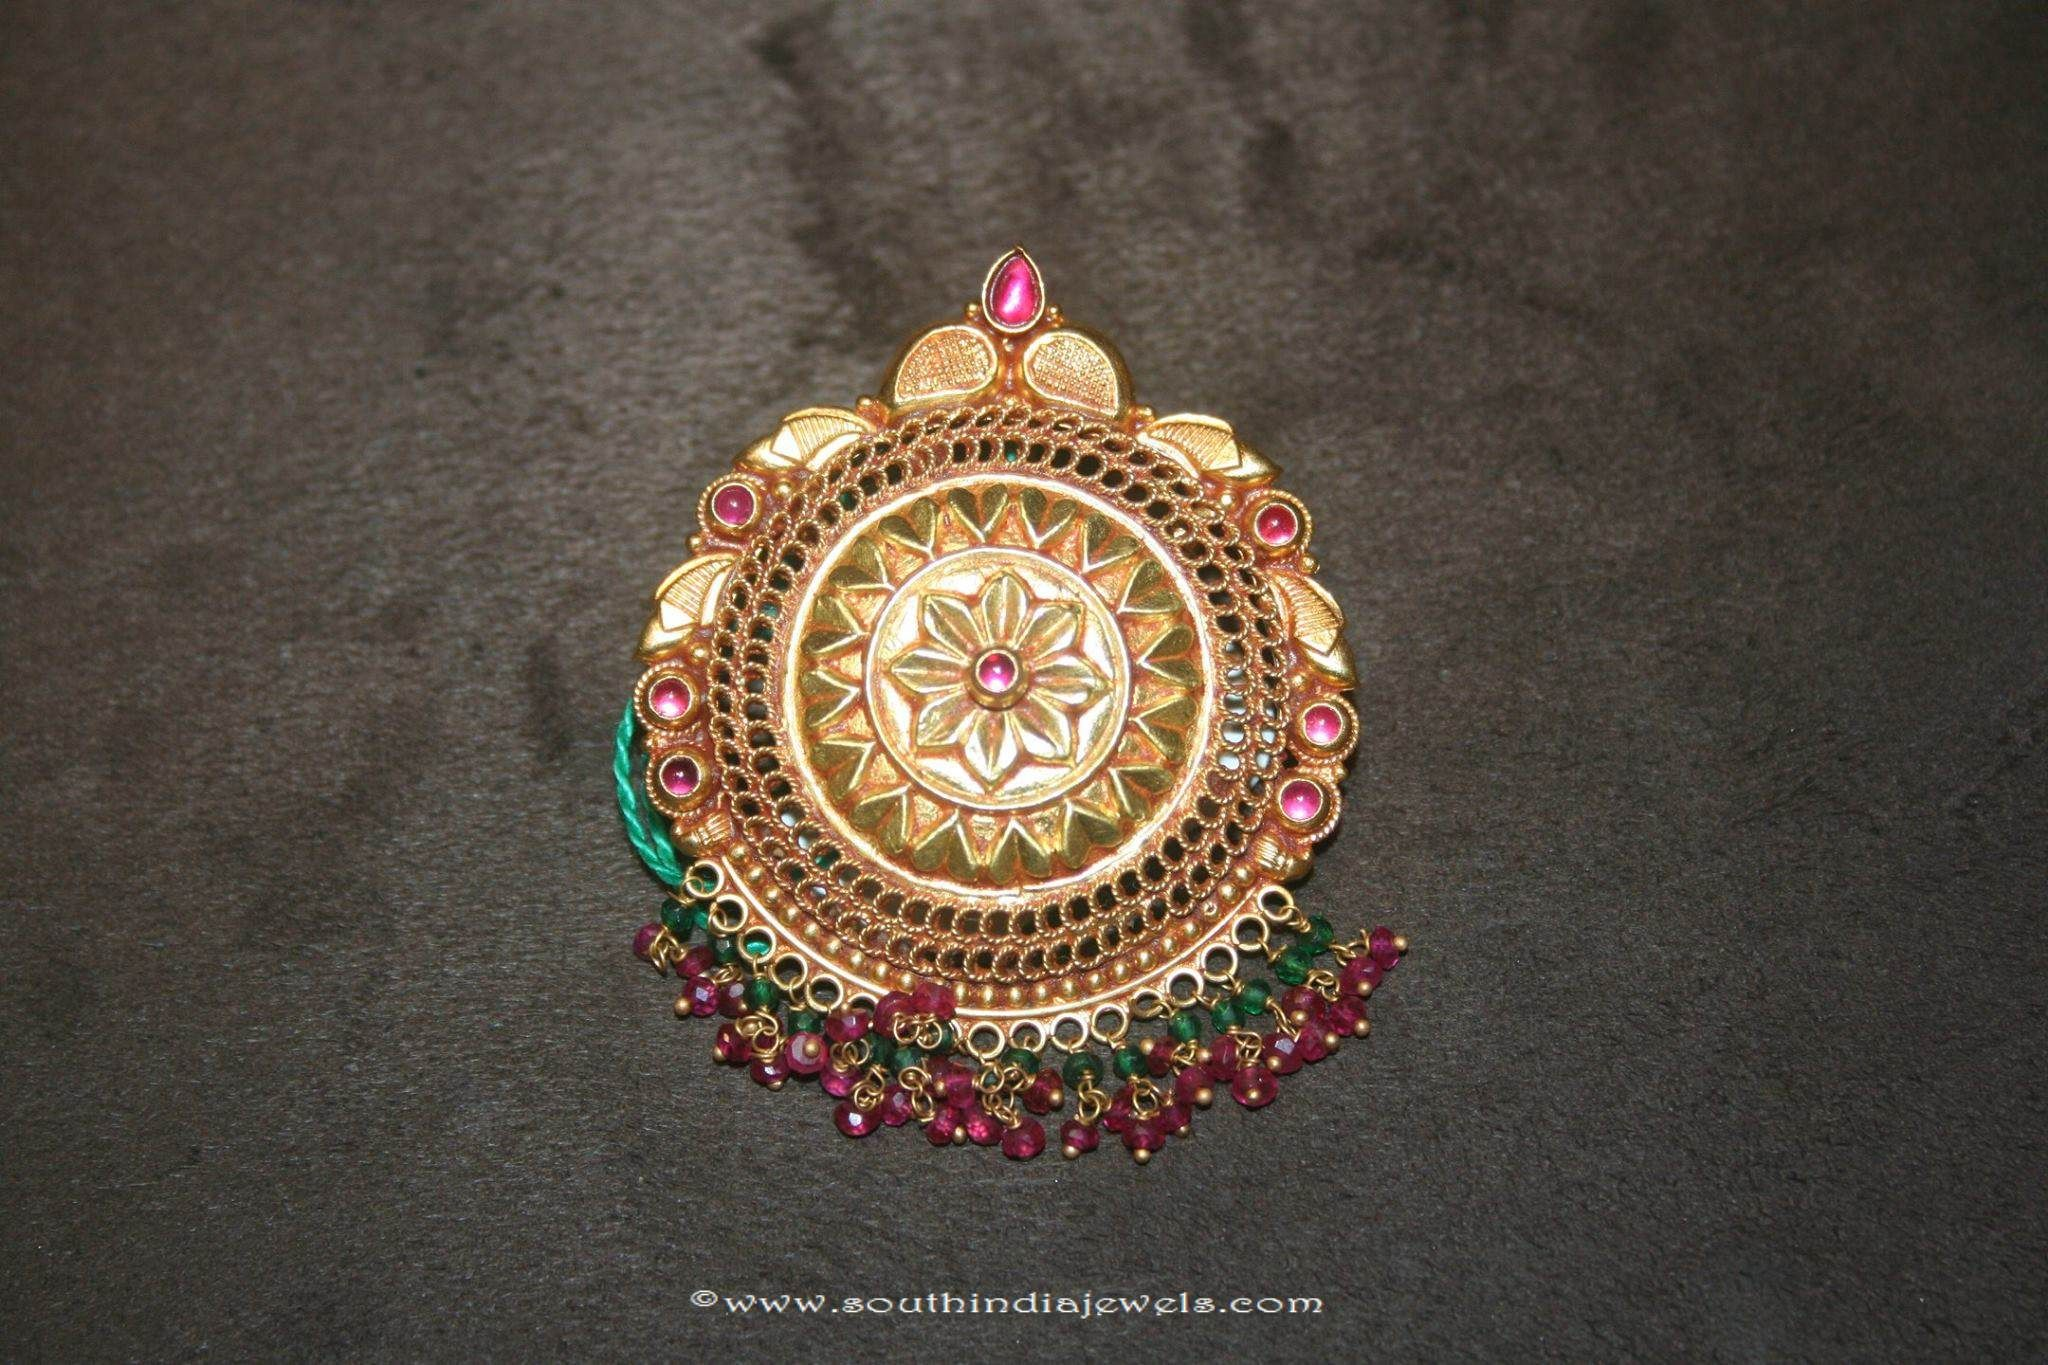 Gold antique floral pendant from prakruthi pinterest south india gold pendant designs gold antique pendant designs gold floral pendant designs aloadofball Image collections